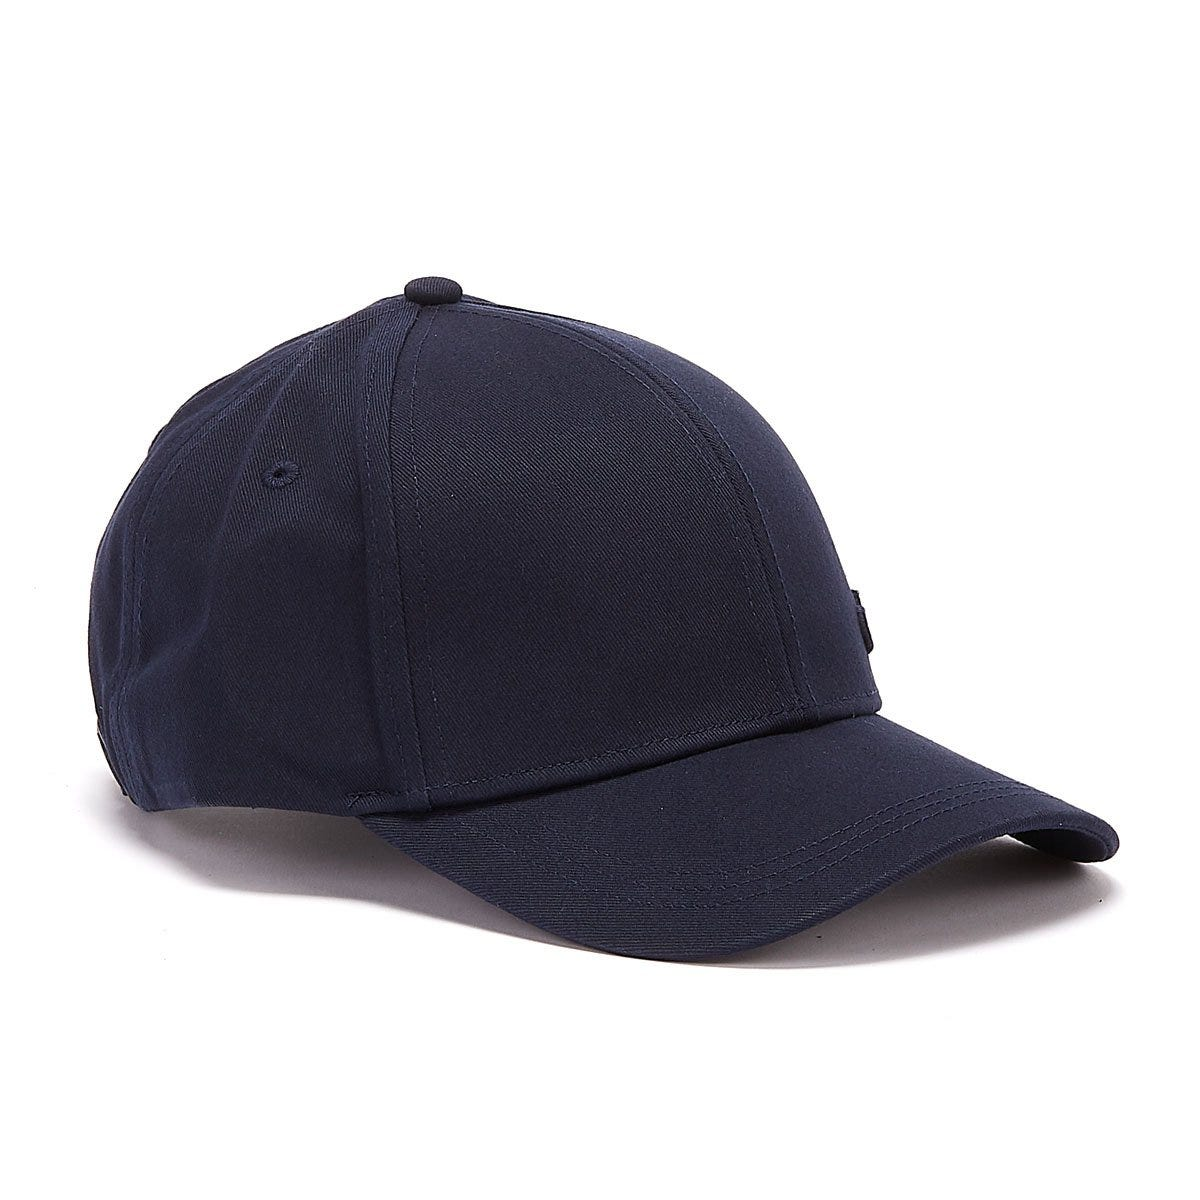 Calvin Klein Jeans Cotton Twill Navy Baseball Cap